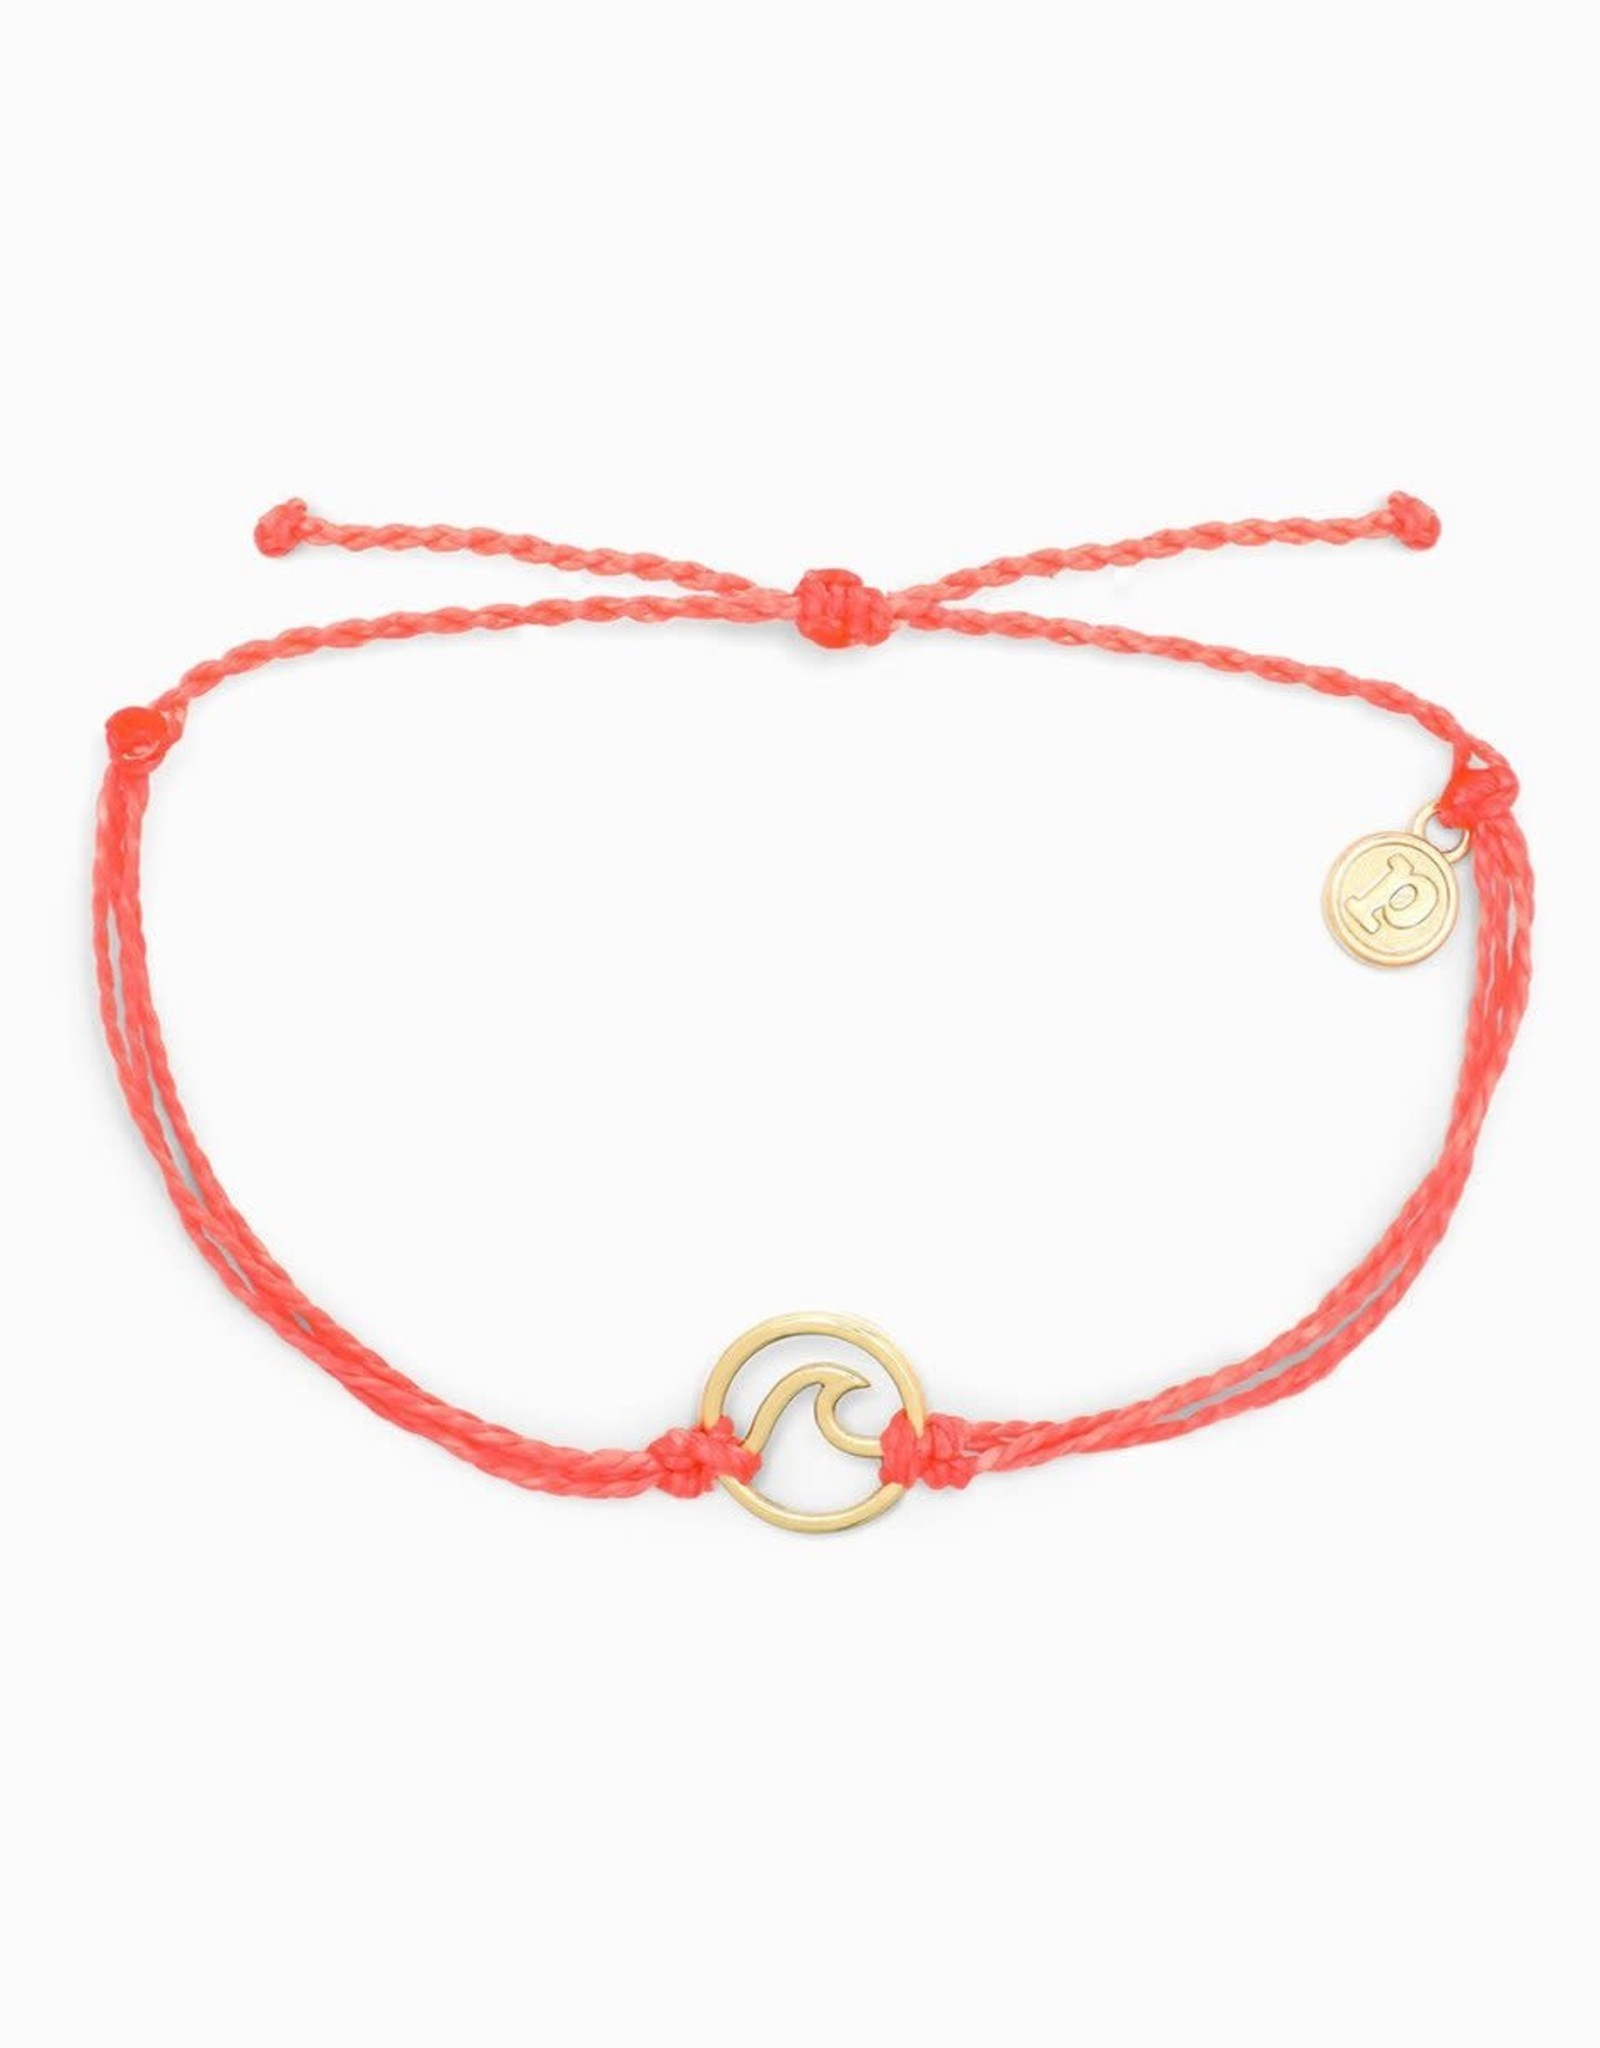 ROSE GOLD WAVE Bracelet, SALMON